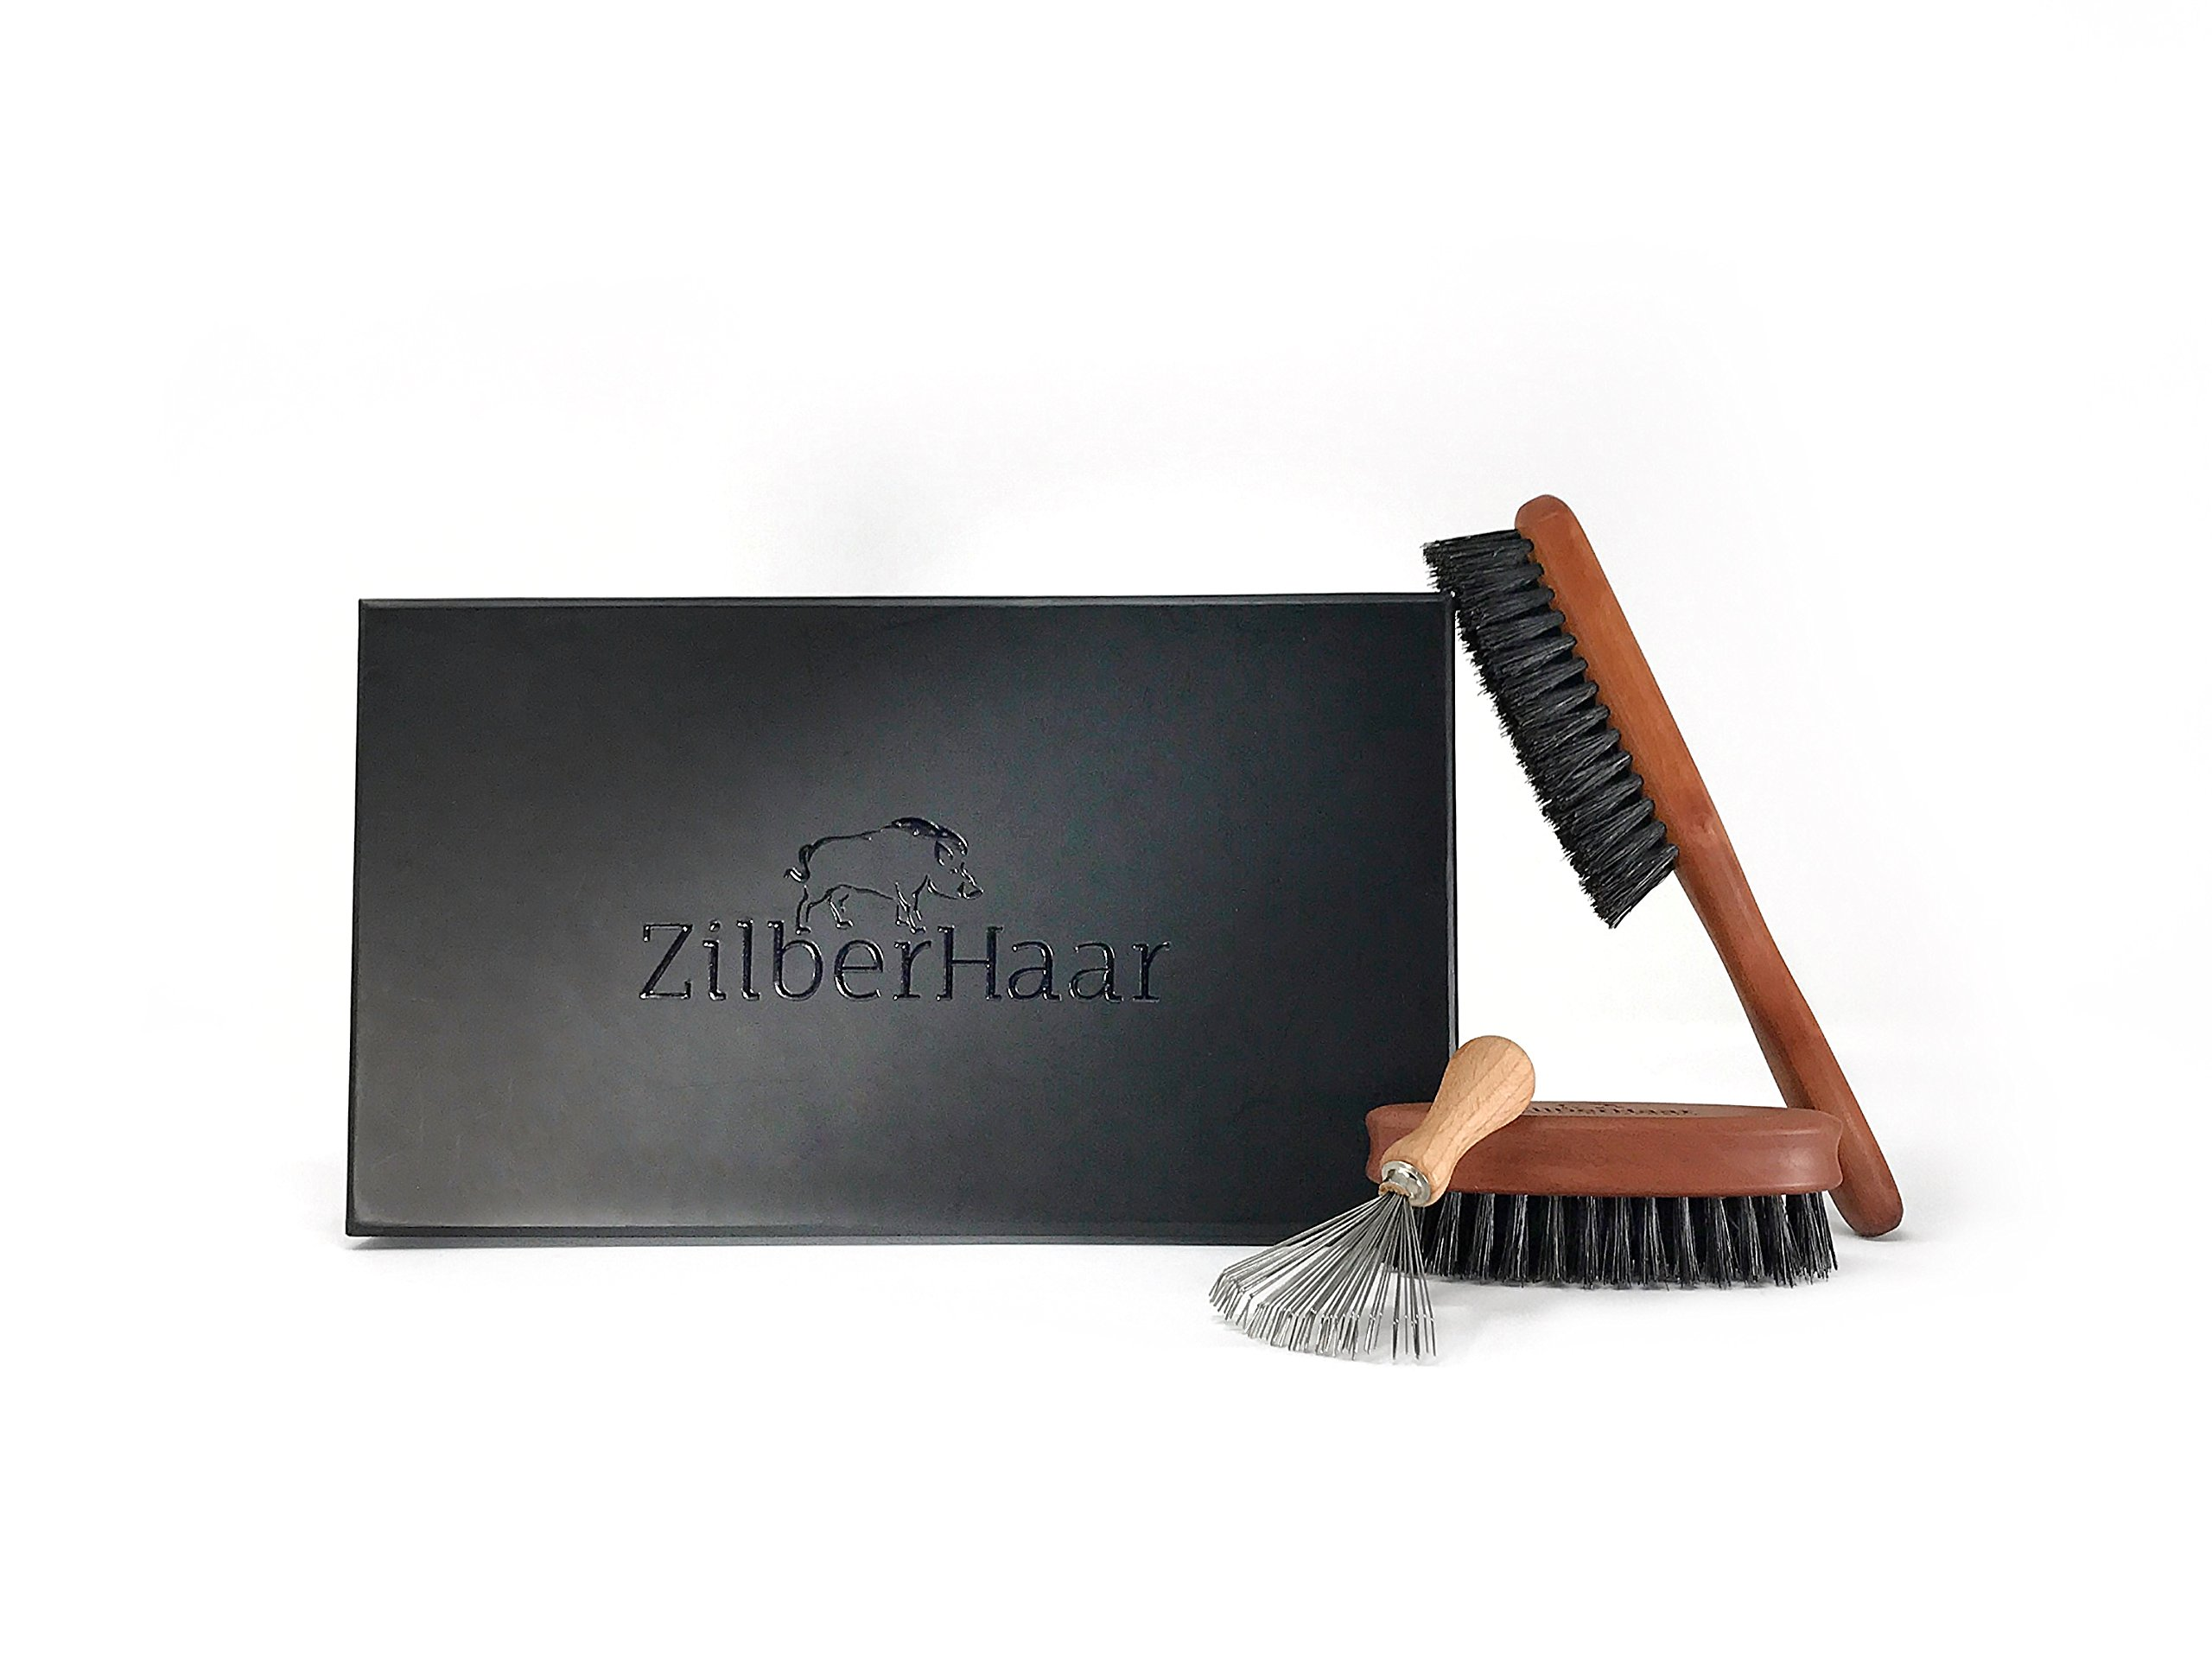 Zilberhaar Basic Beard Brush Kit (Stiff Version) - Ideal for Medium to Long, Thick Beards - Distributes Balm & Oil for Growth and Styling - Perfect Gift Set - Comes with Brush Cleaning Tool